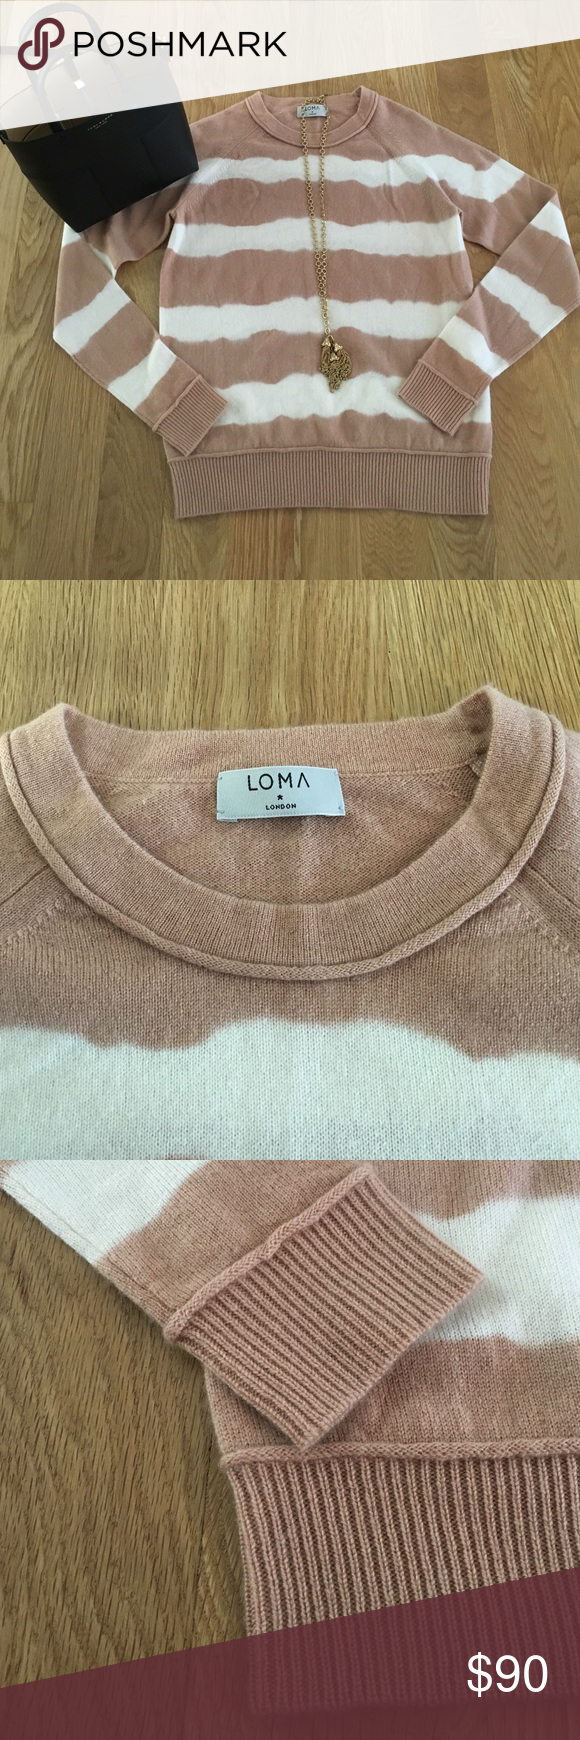 New LOMA if London cashmere sweater New ( without tags ) LOMA ...